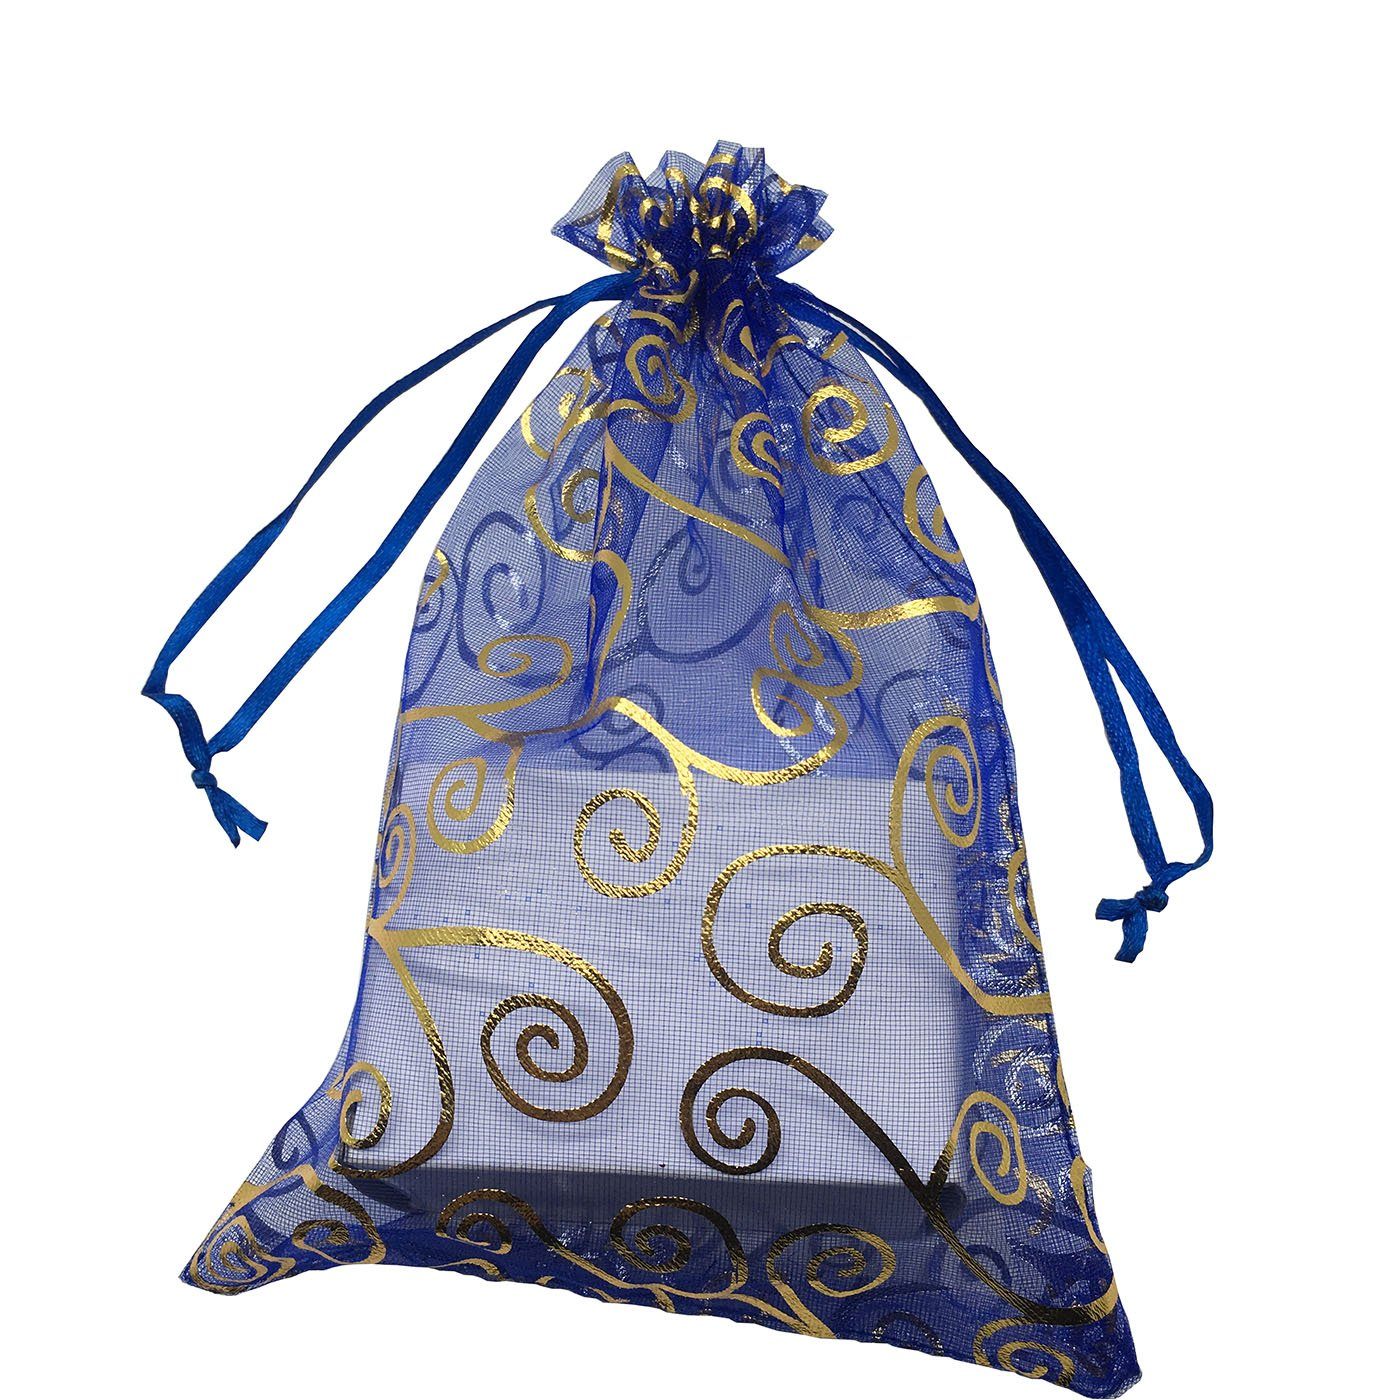 13x18cm Drawstring Organza Jewelry Favor Pouches Wedding Party Festival Gift Bags Candy Bags 5x7, Royal Blue and Gold Sosam 100PCS 5x7